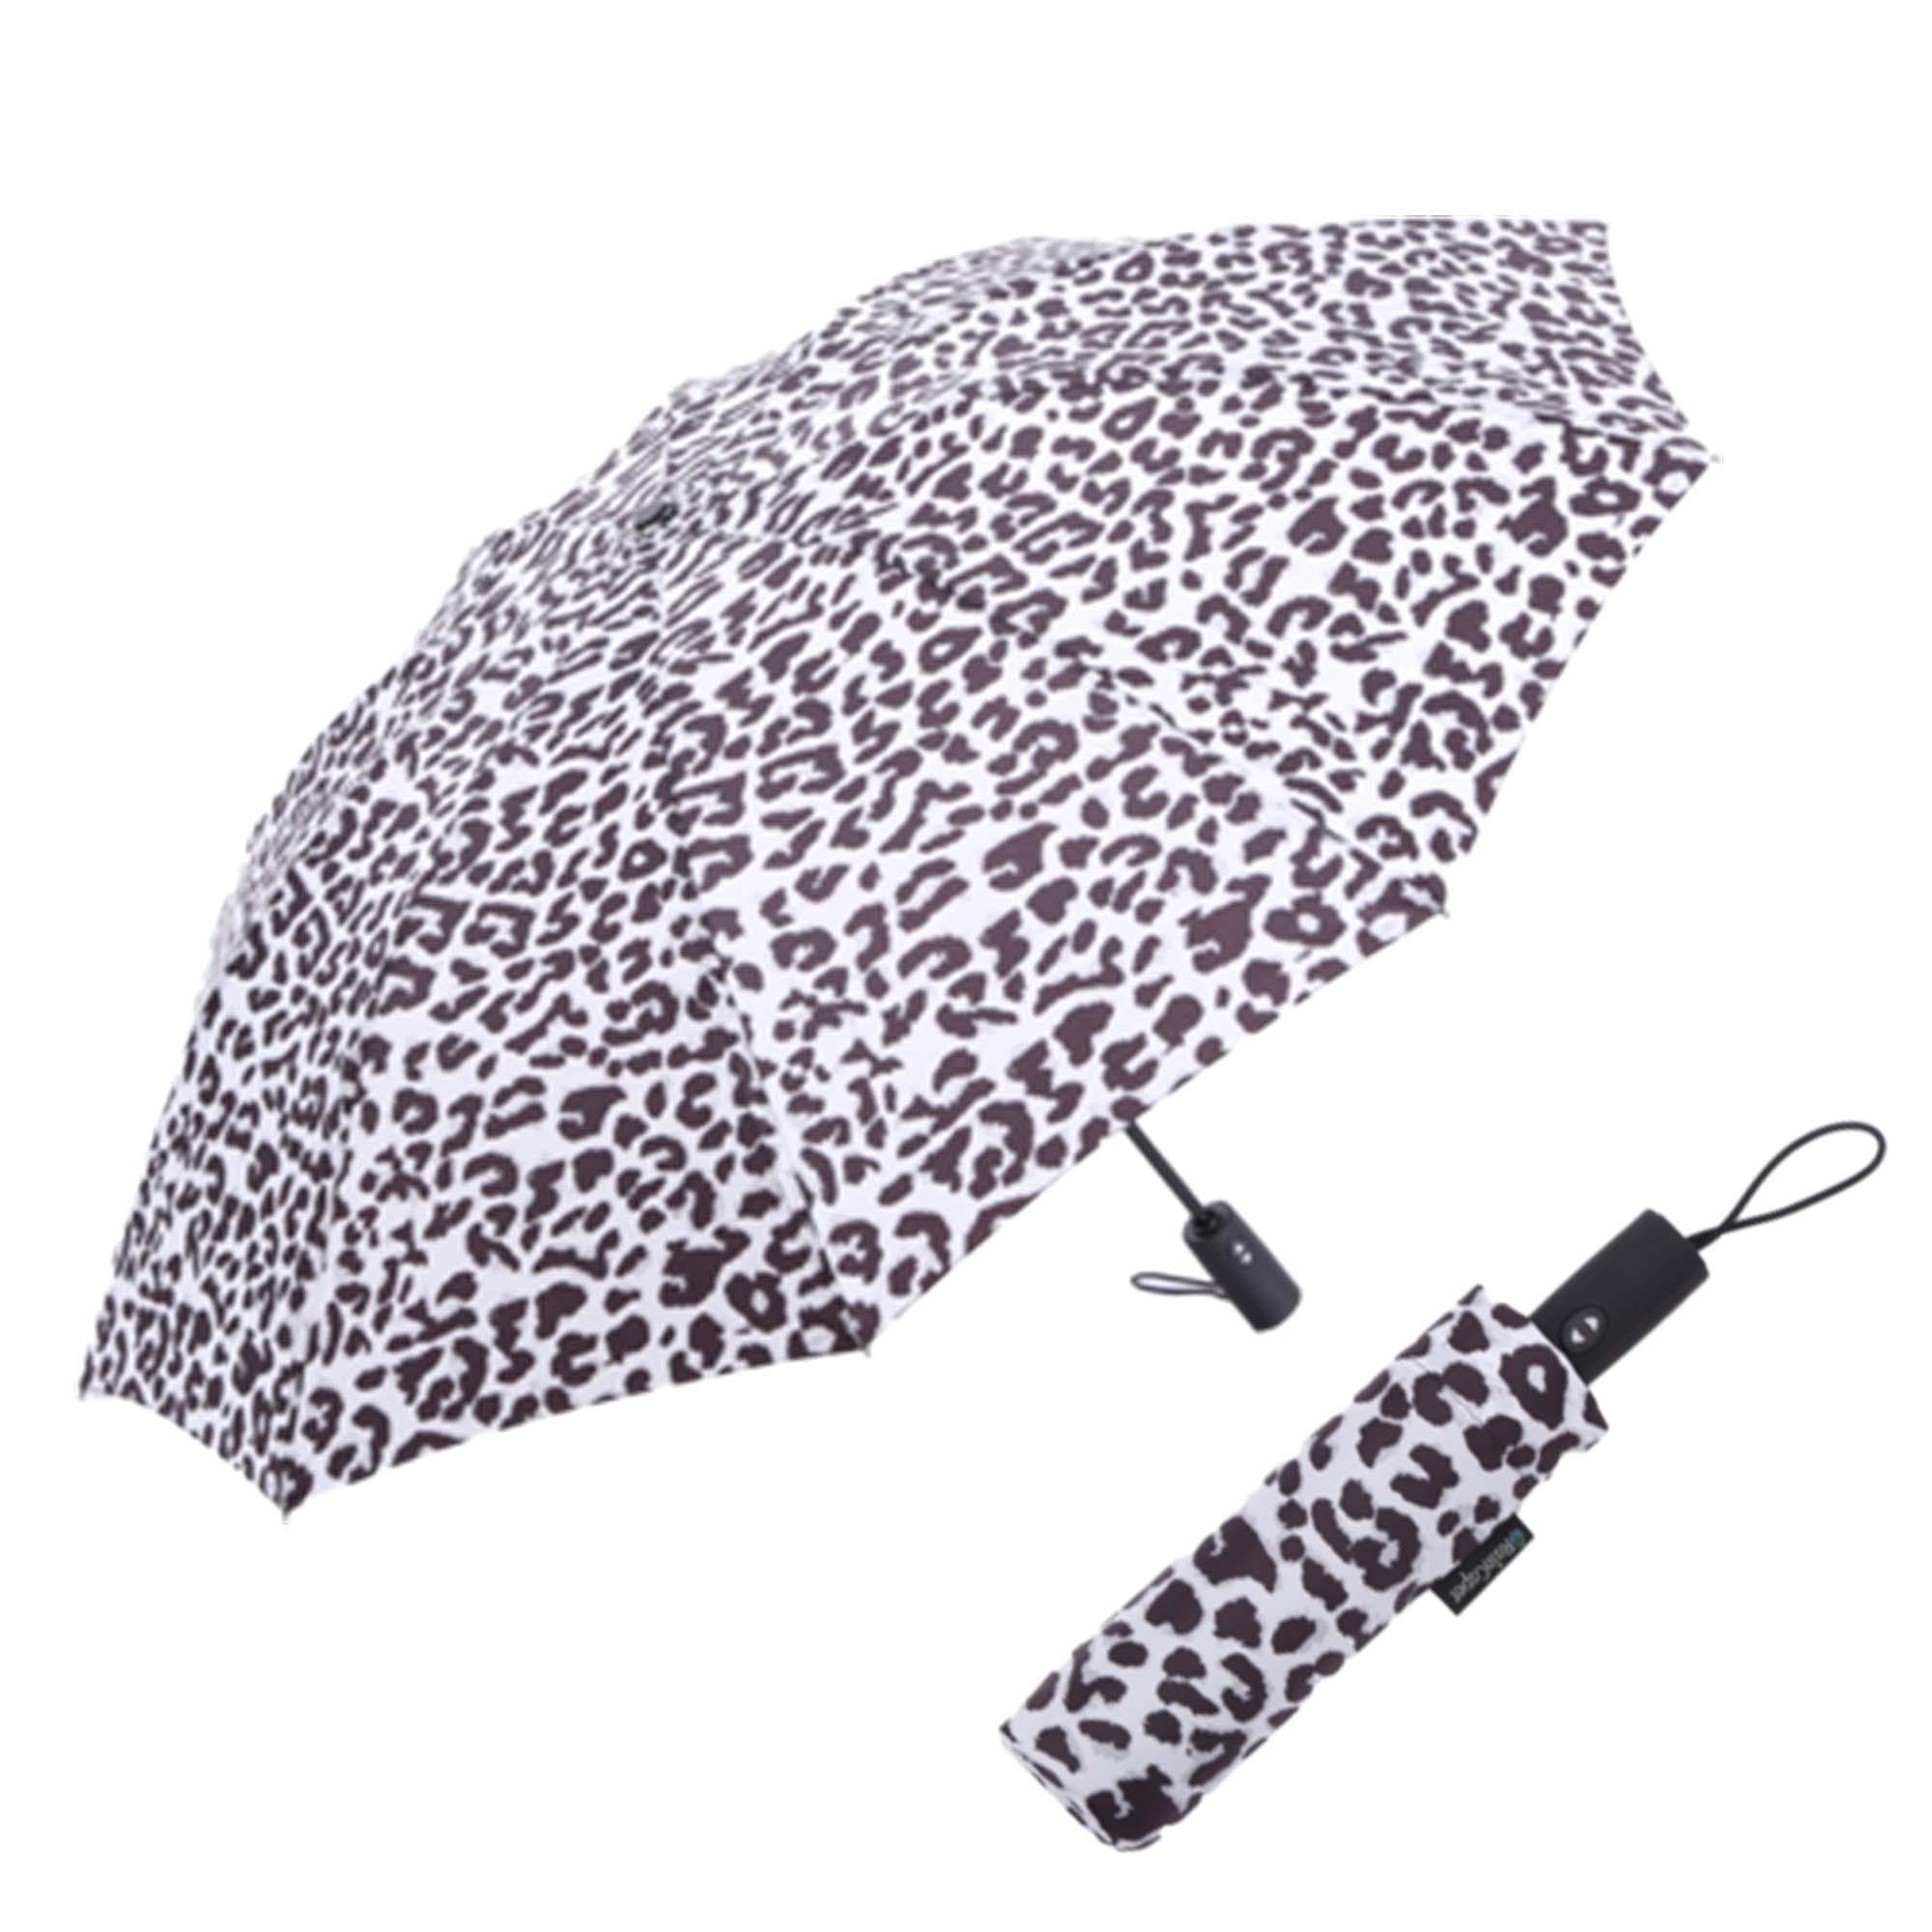 Image of a RainCaper Black & White Animal Print folded traveling umbrella shown both open and closed